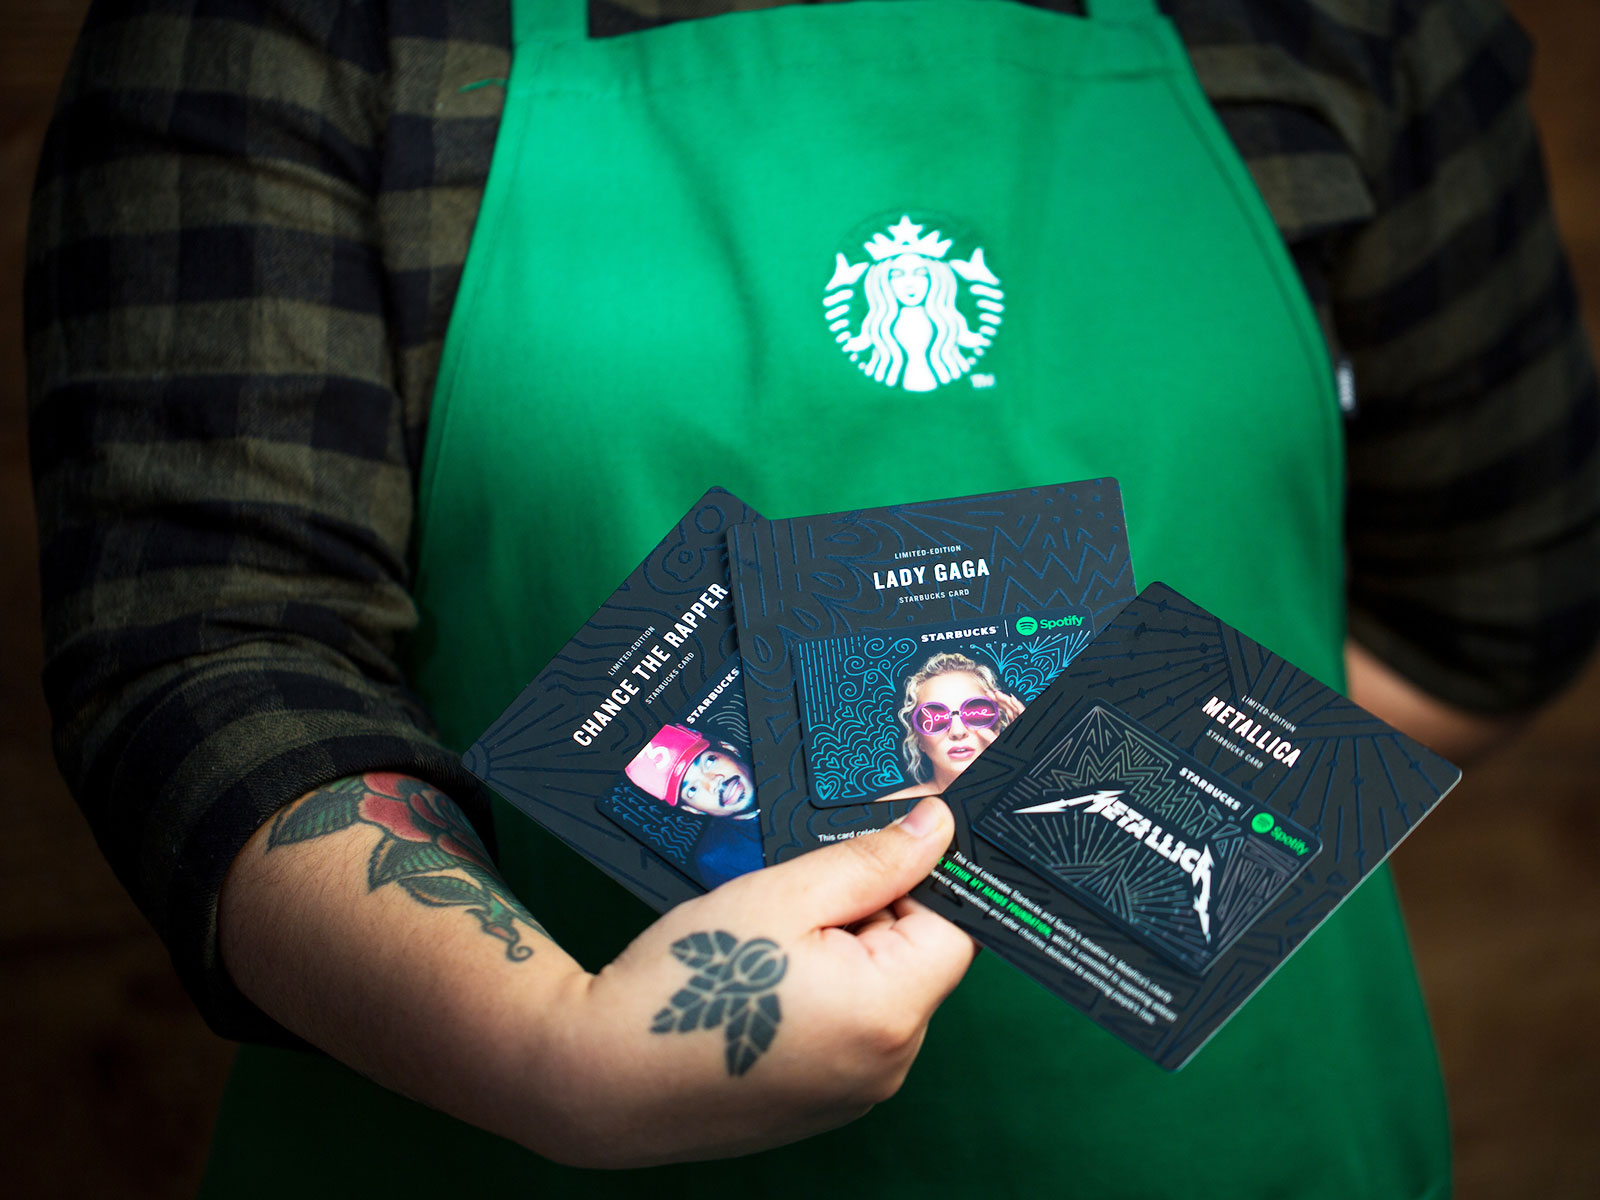 Starbucks Is Giving Away $1 Million in Gift Cards, Here's How to Get One